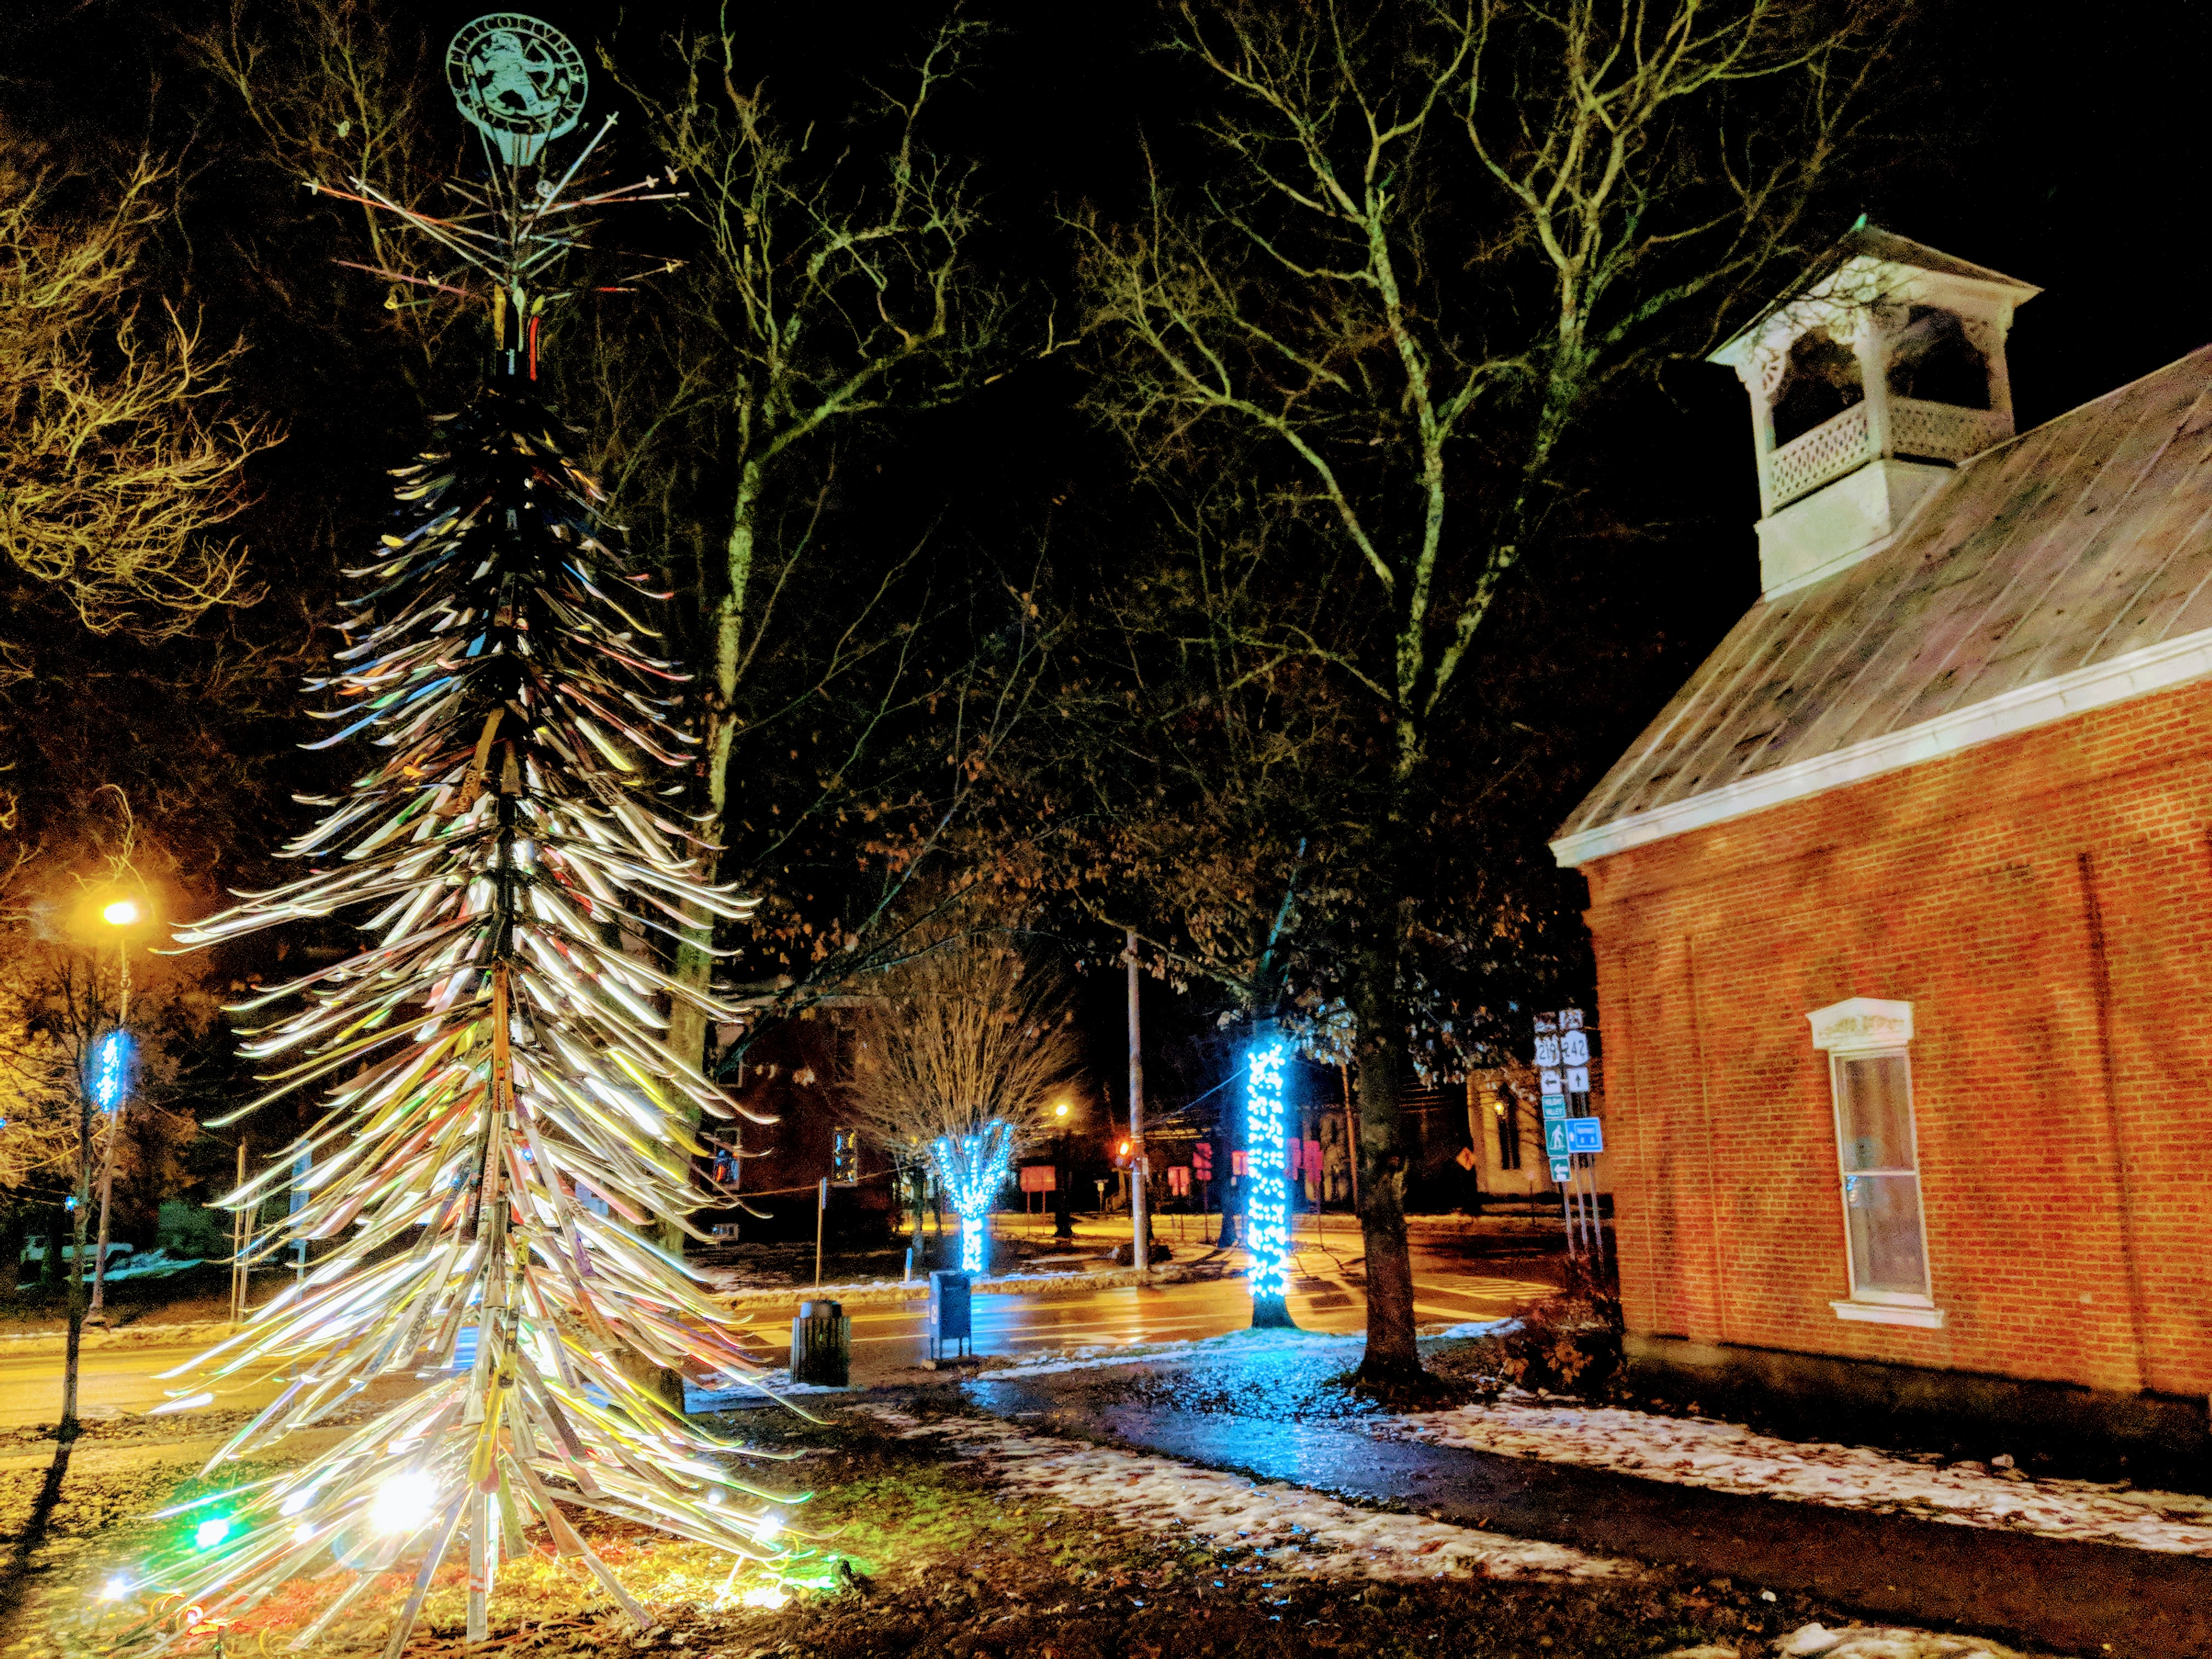 Historic village holiday lights